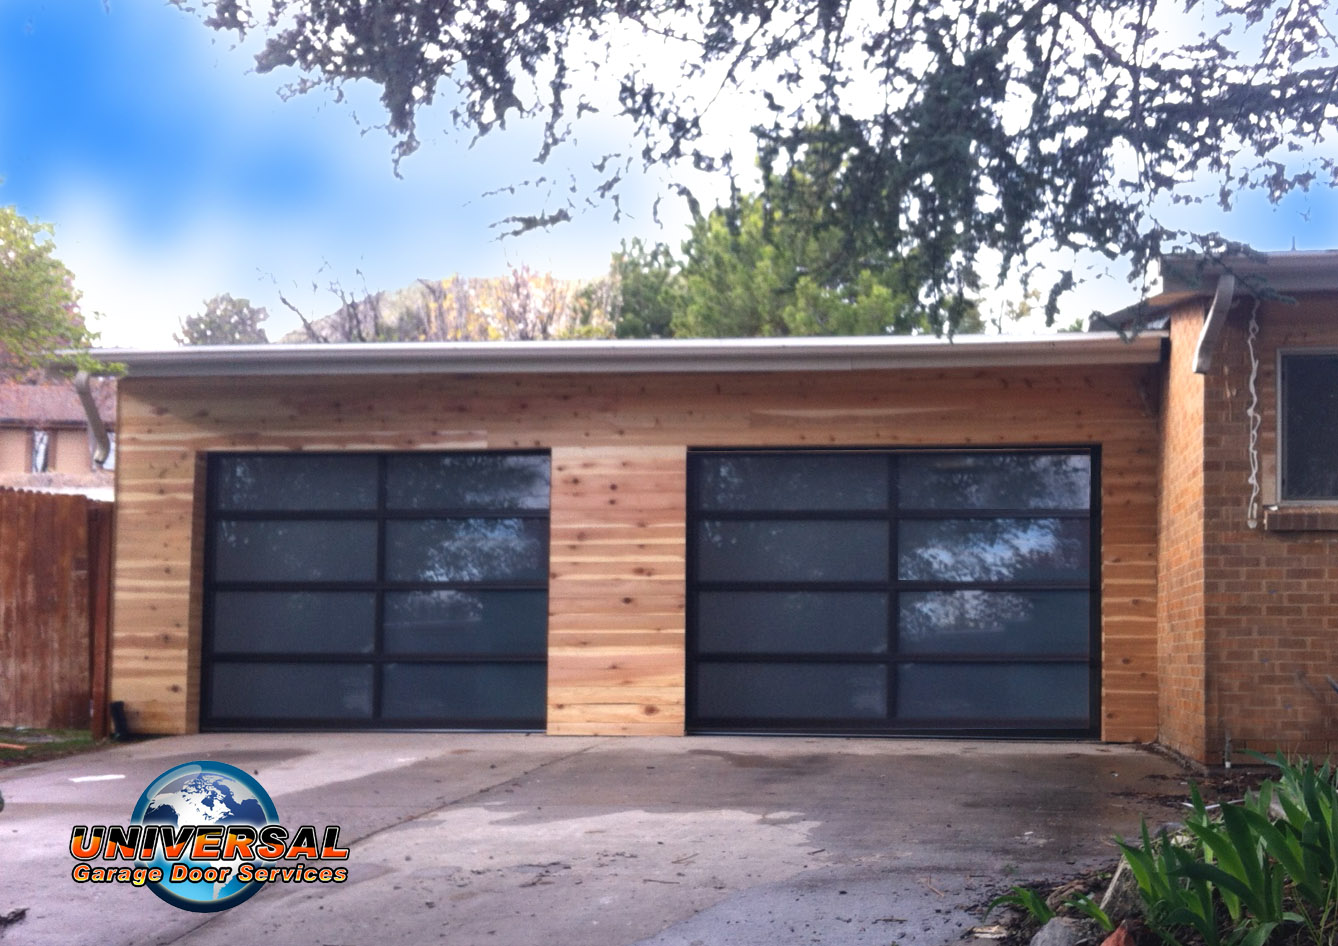 Garage Door Repair Yelp New Garage Doors Universal Garage Door Services